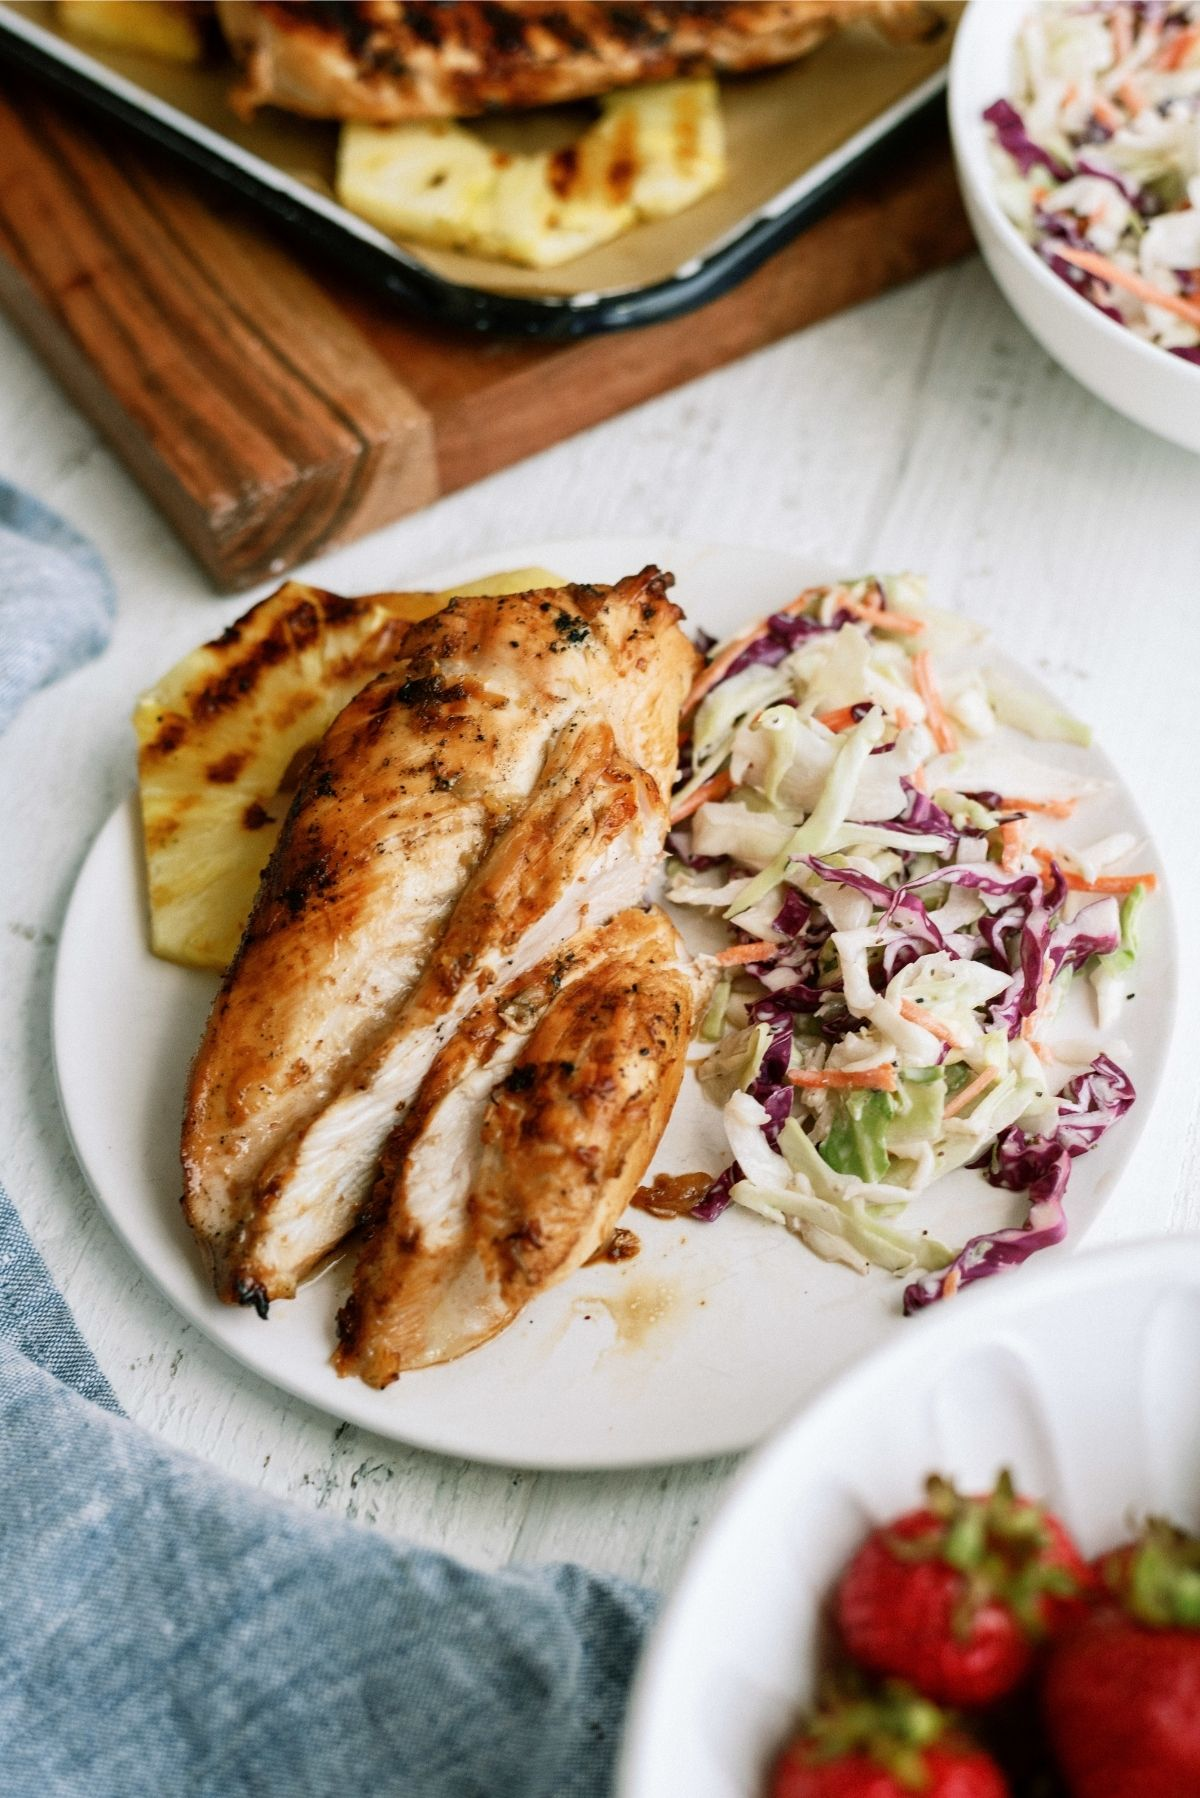 Pineapple Grilled Chicken sliced on a plate served with pineapple and coleslaw